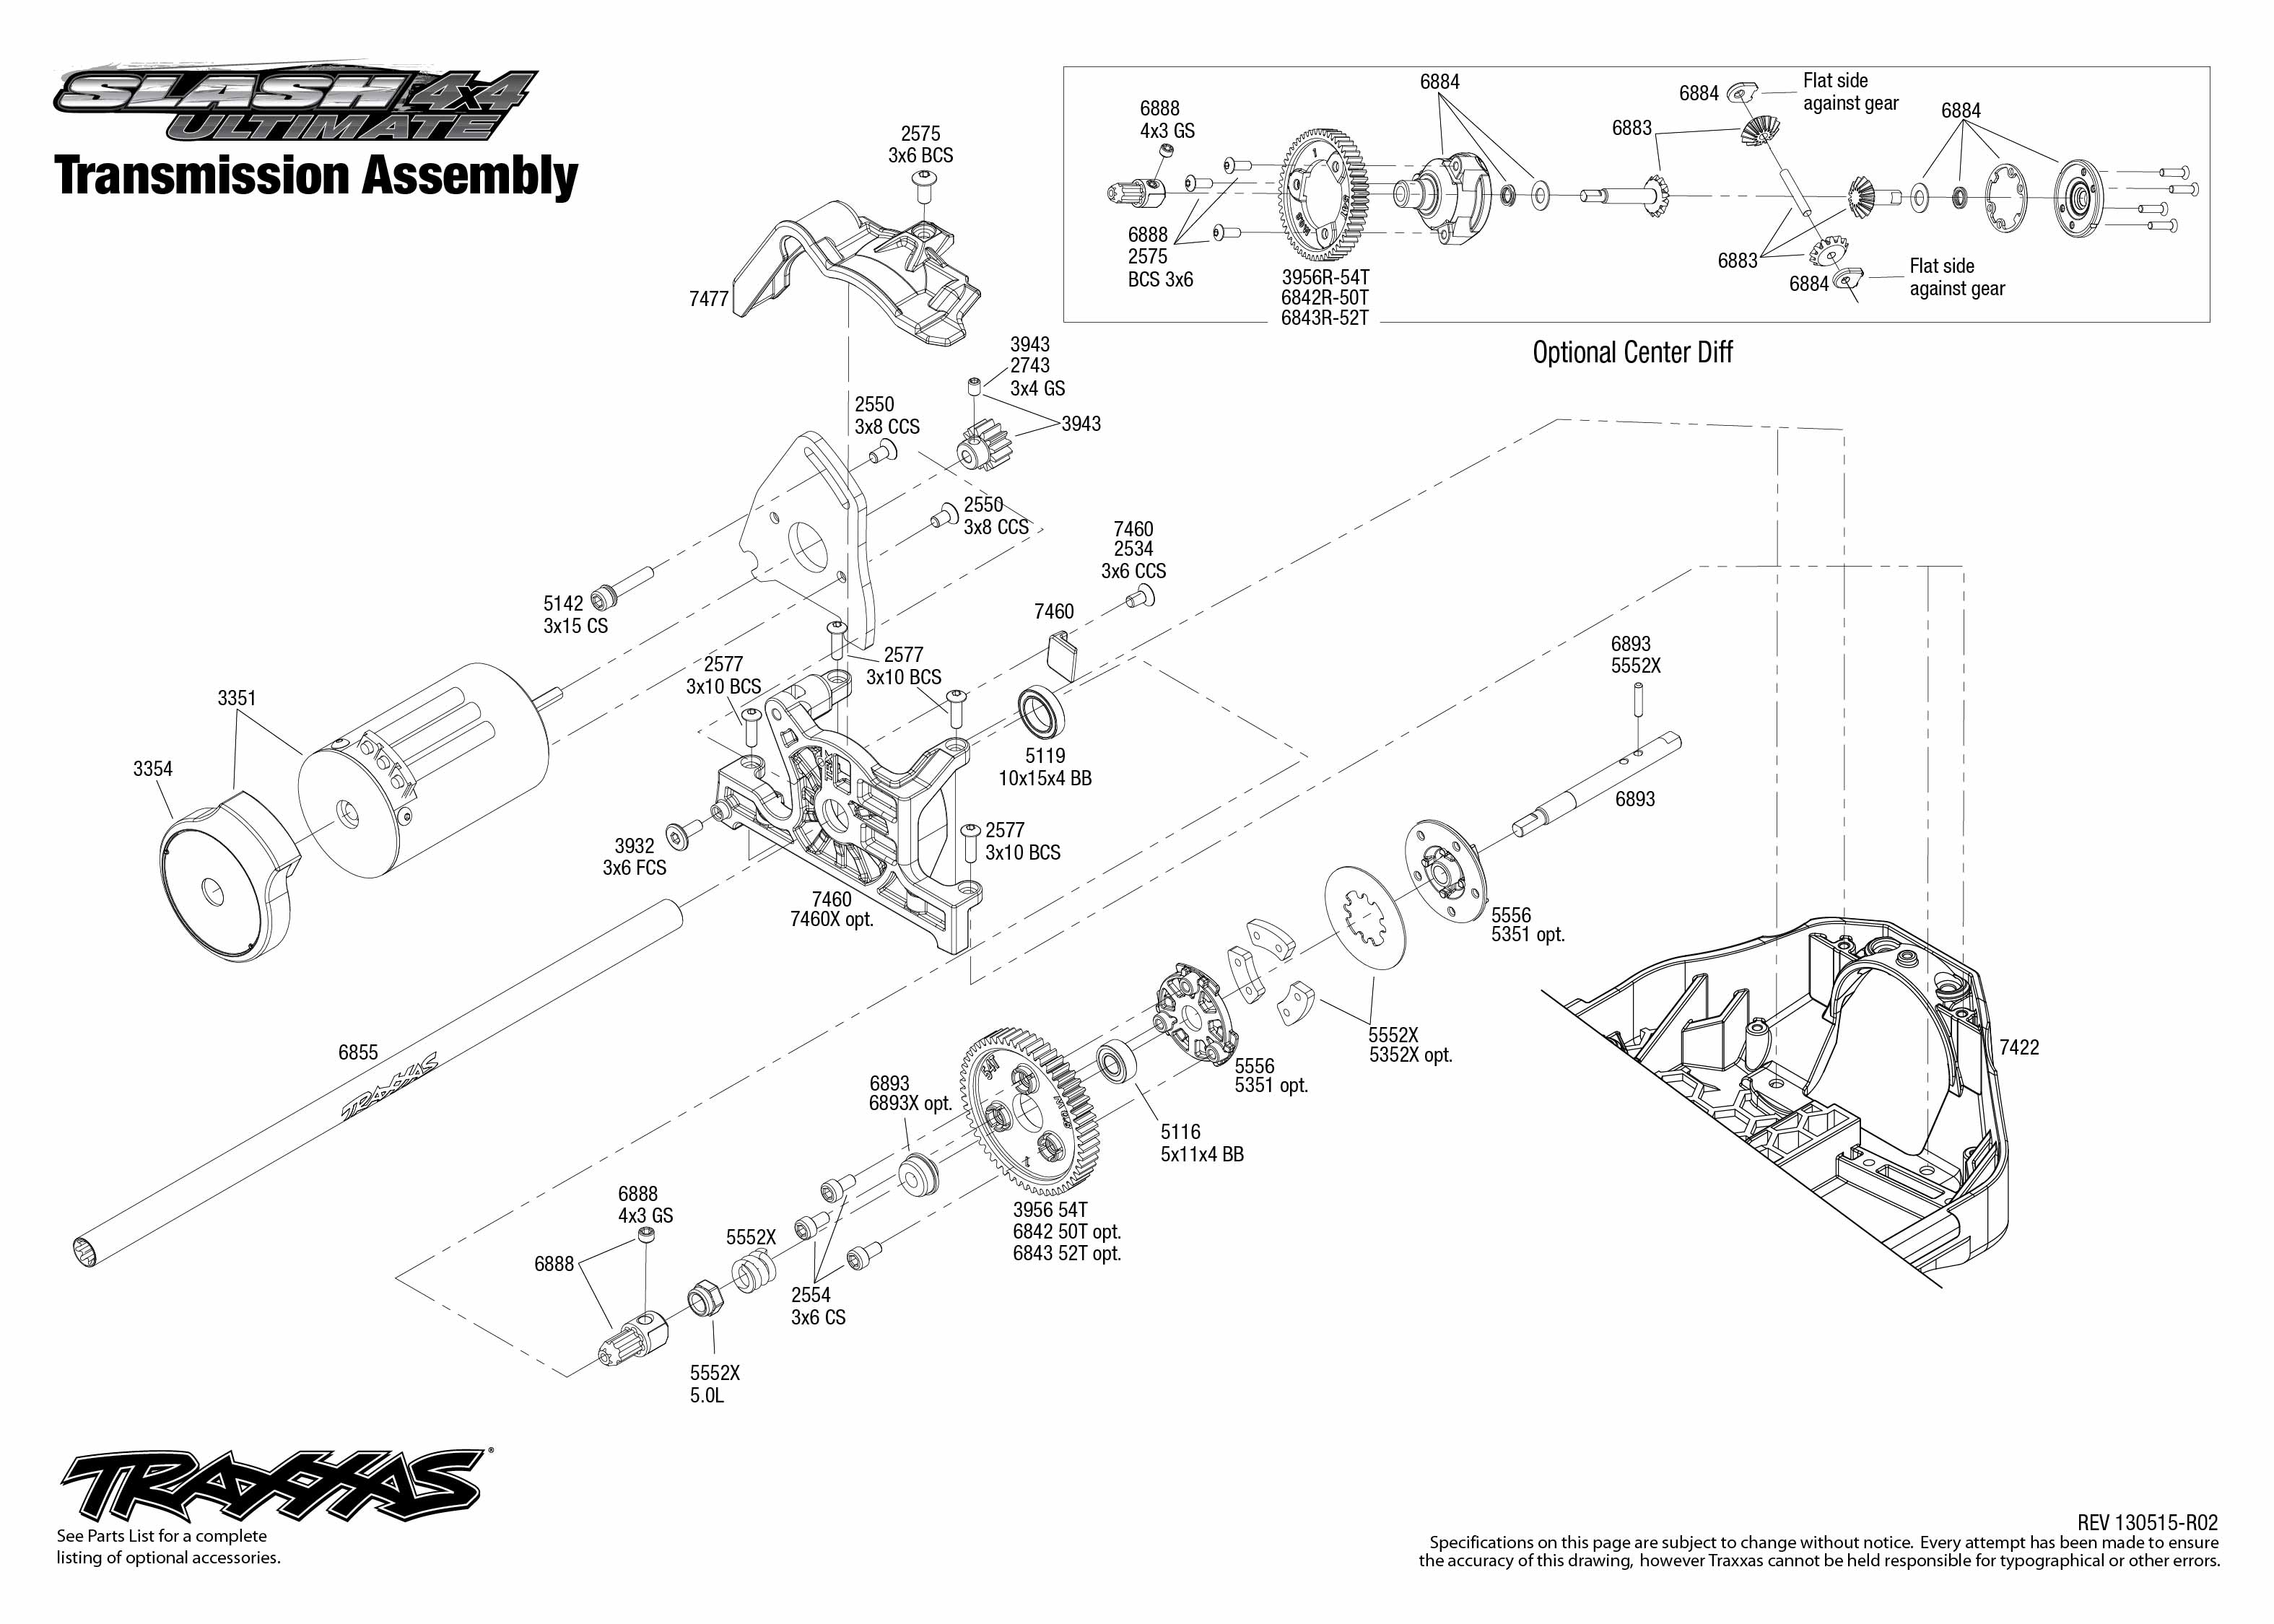 Exciting E Maxx Parts Diagram Gallery - Best Image Wire - binvm.us